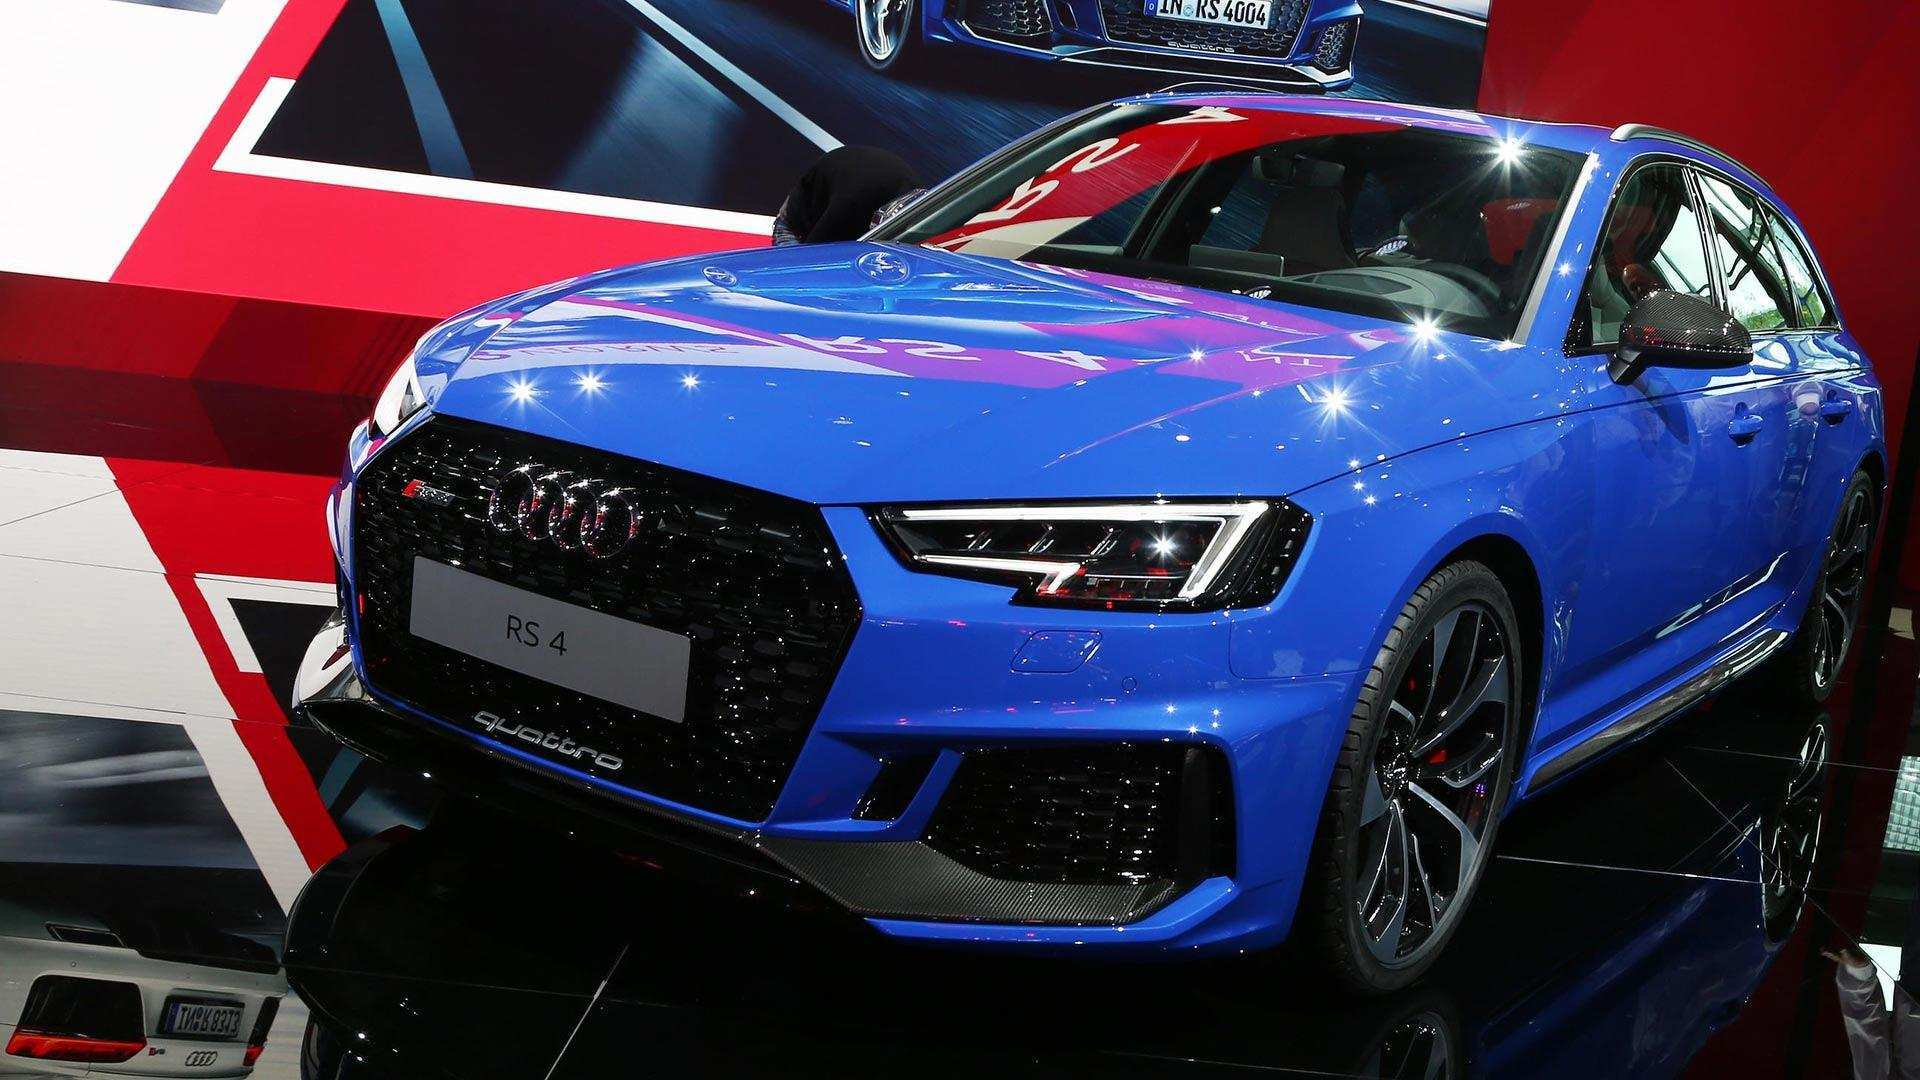 94 Concept of 2020 Audi Rs4 Images with 2020 Audi Rs4